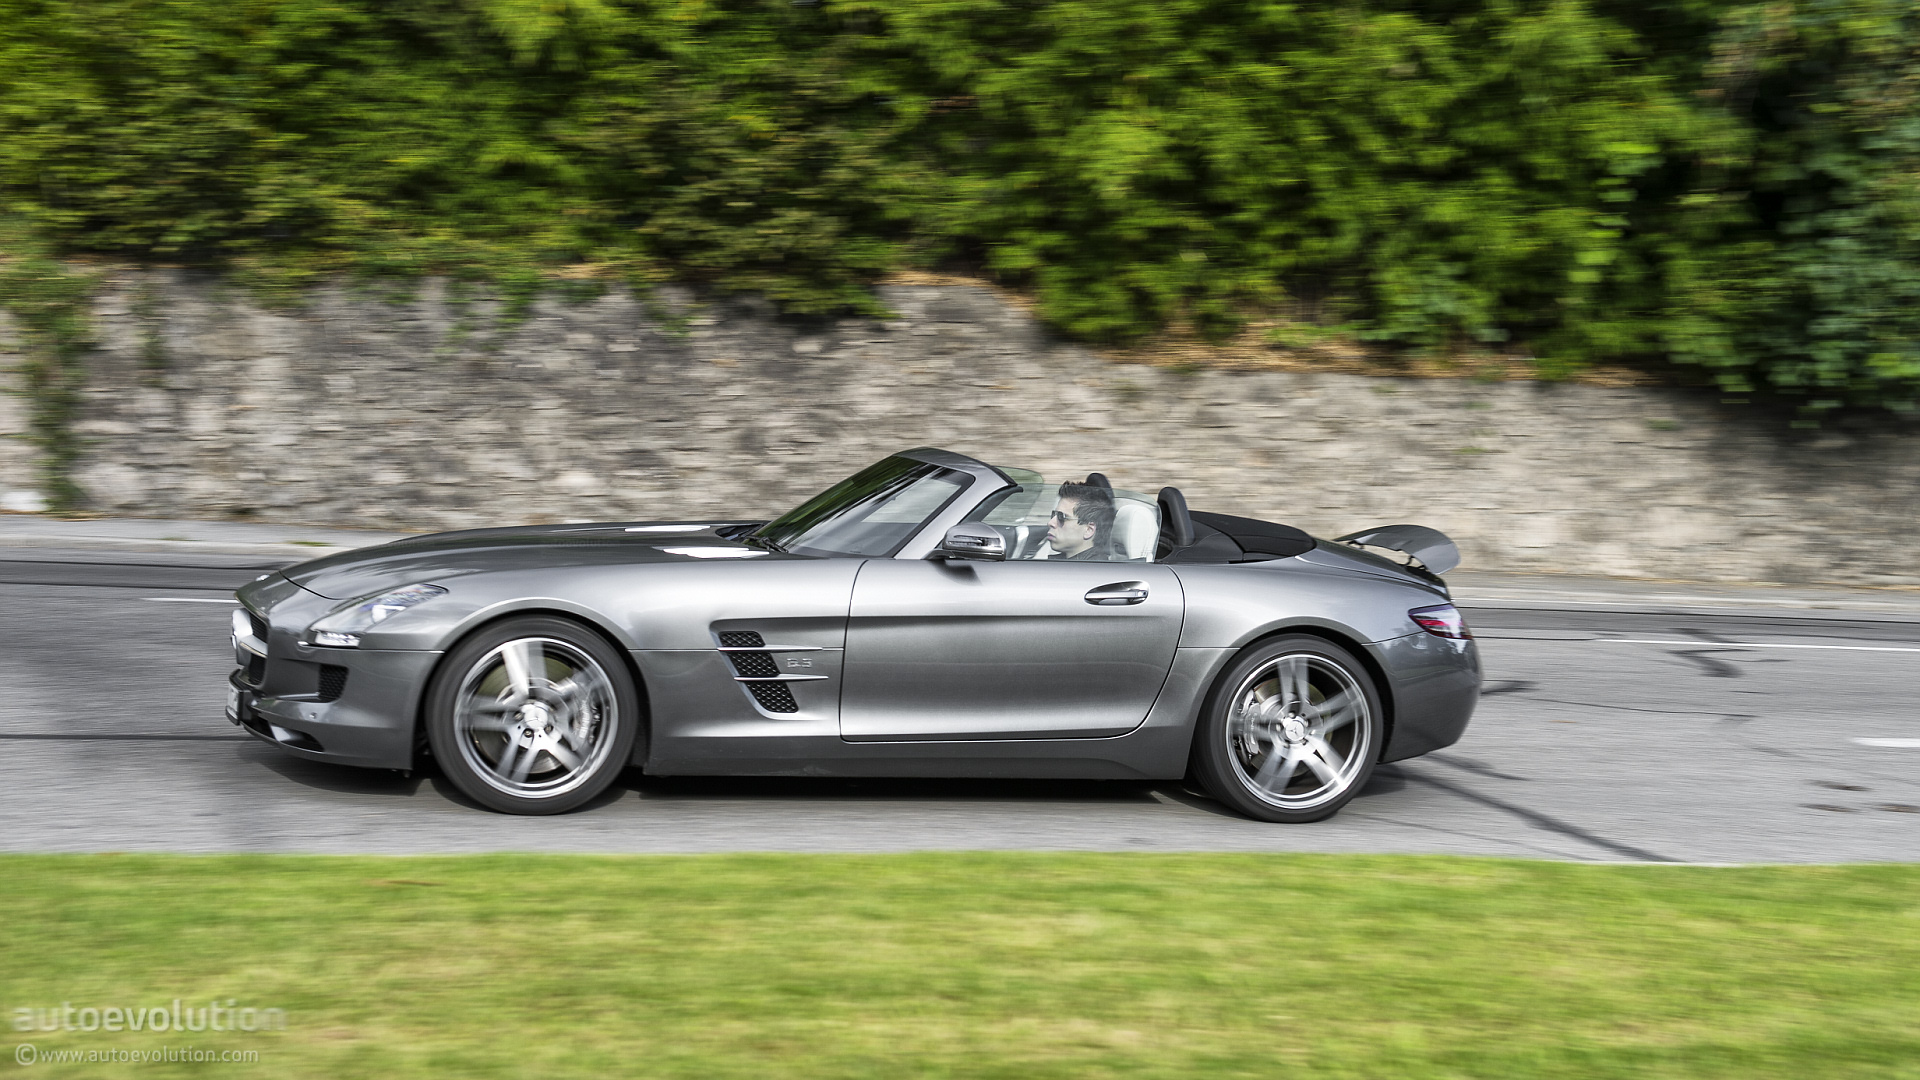 Mercedes benz sls amg roadster review autoevolution for Silverlit mercedes benz sls amg